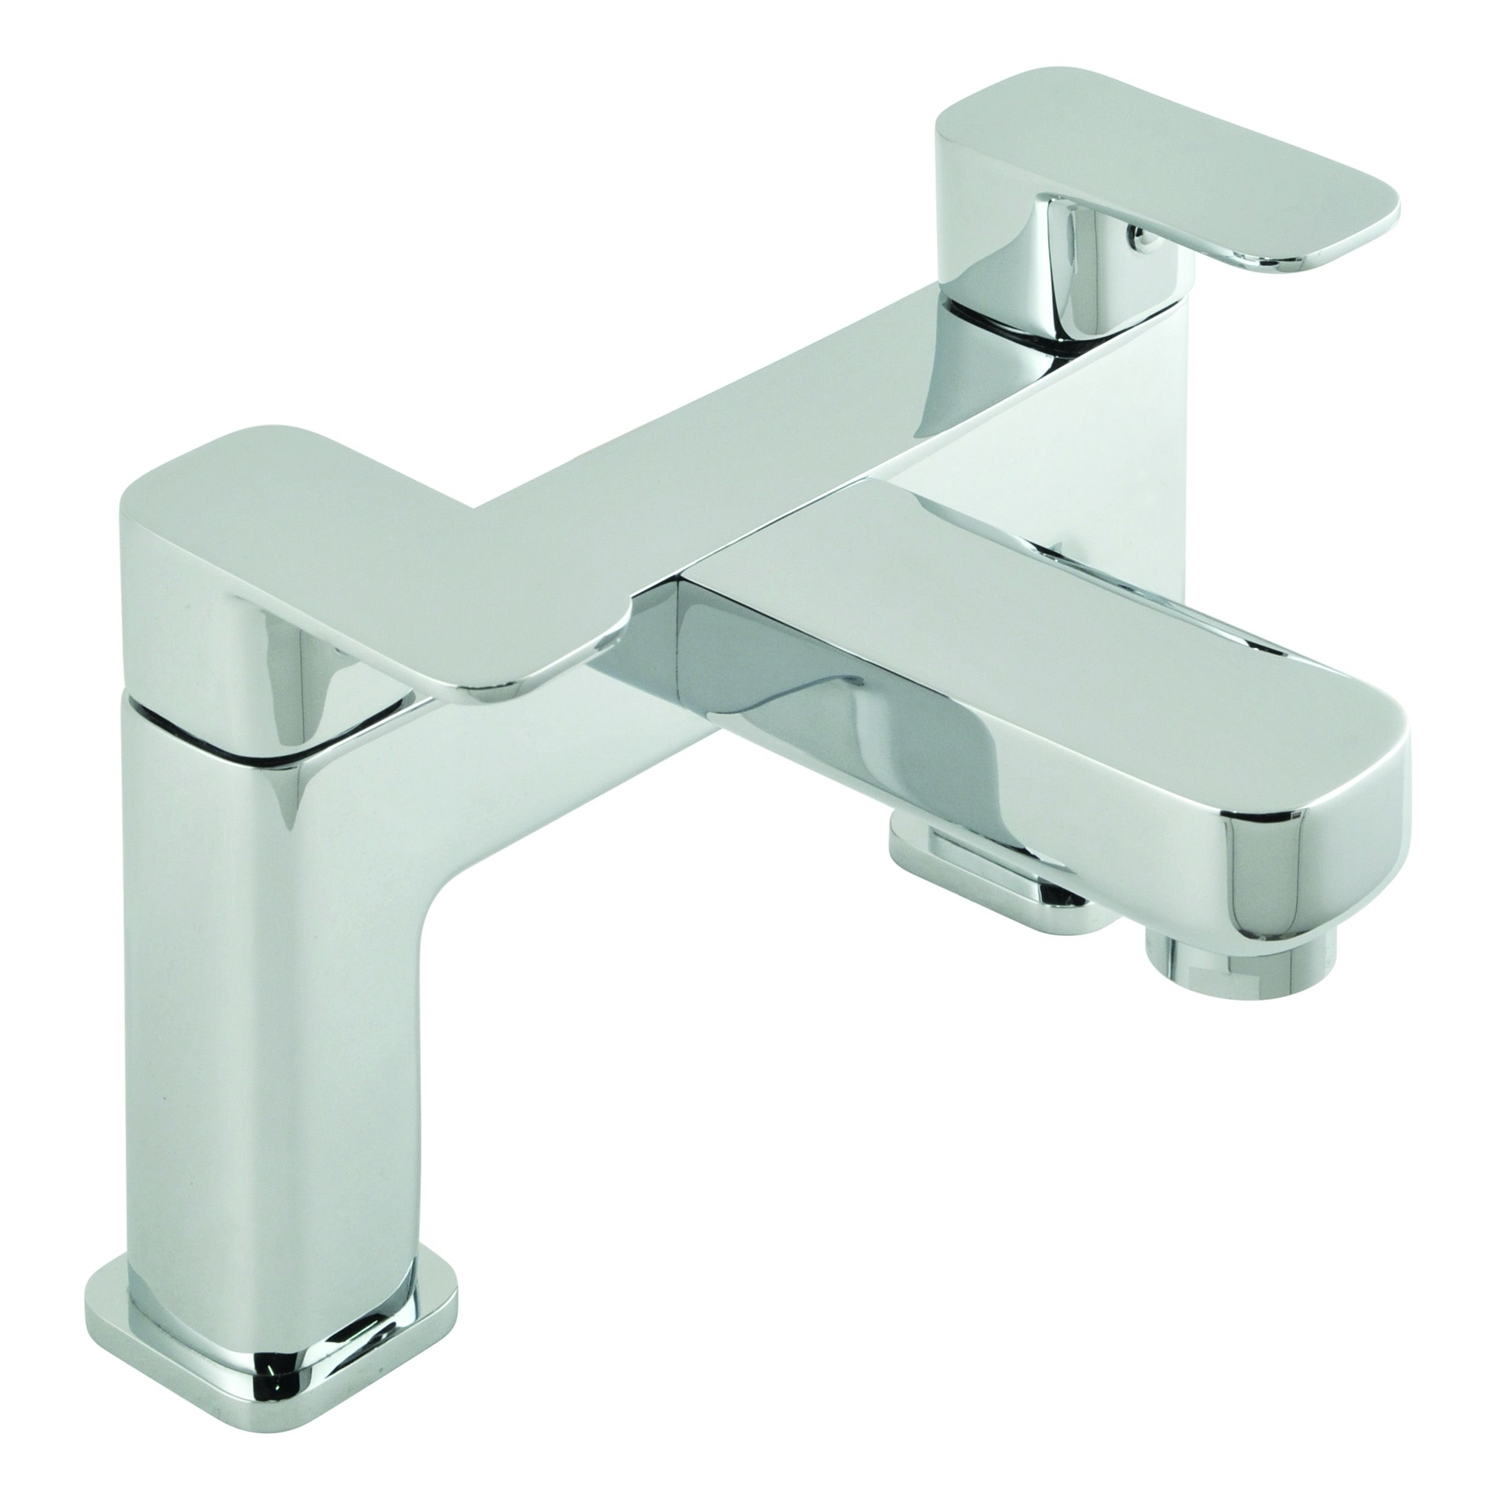 Image of Casa Palma 2 Hole Deck Mounted Bath Filler, Chrome